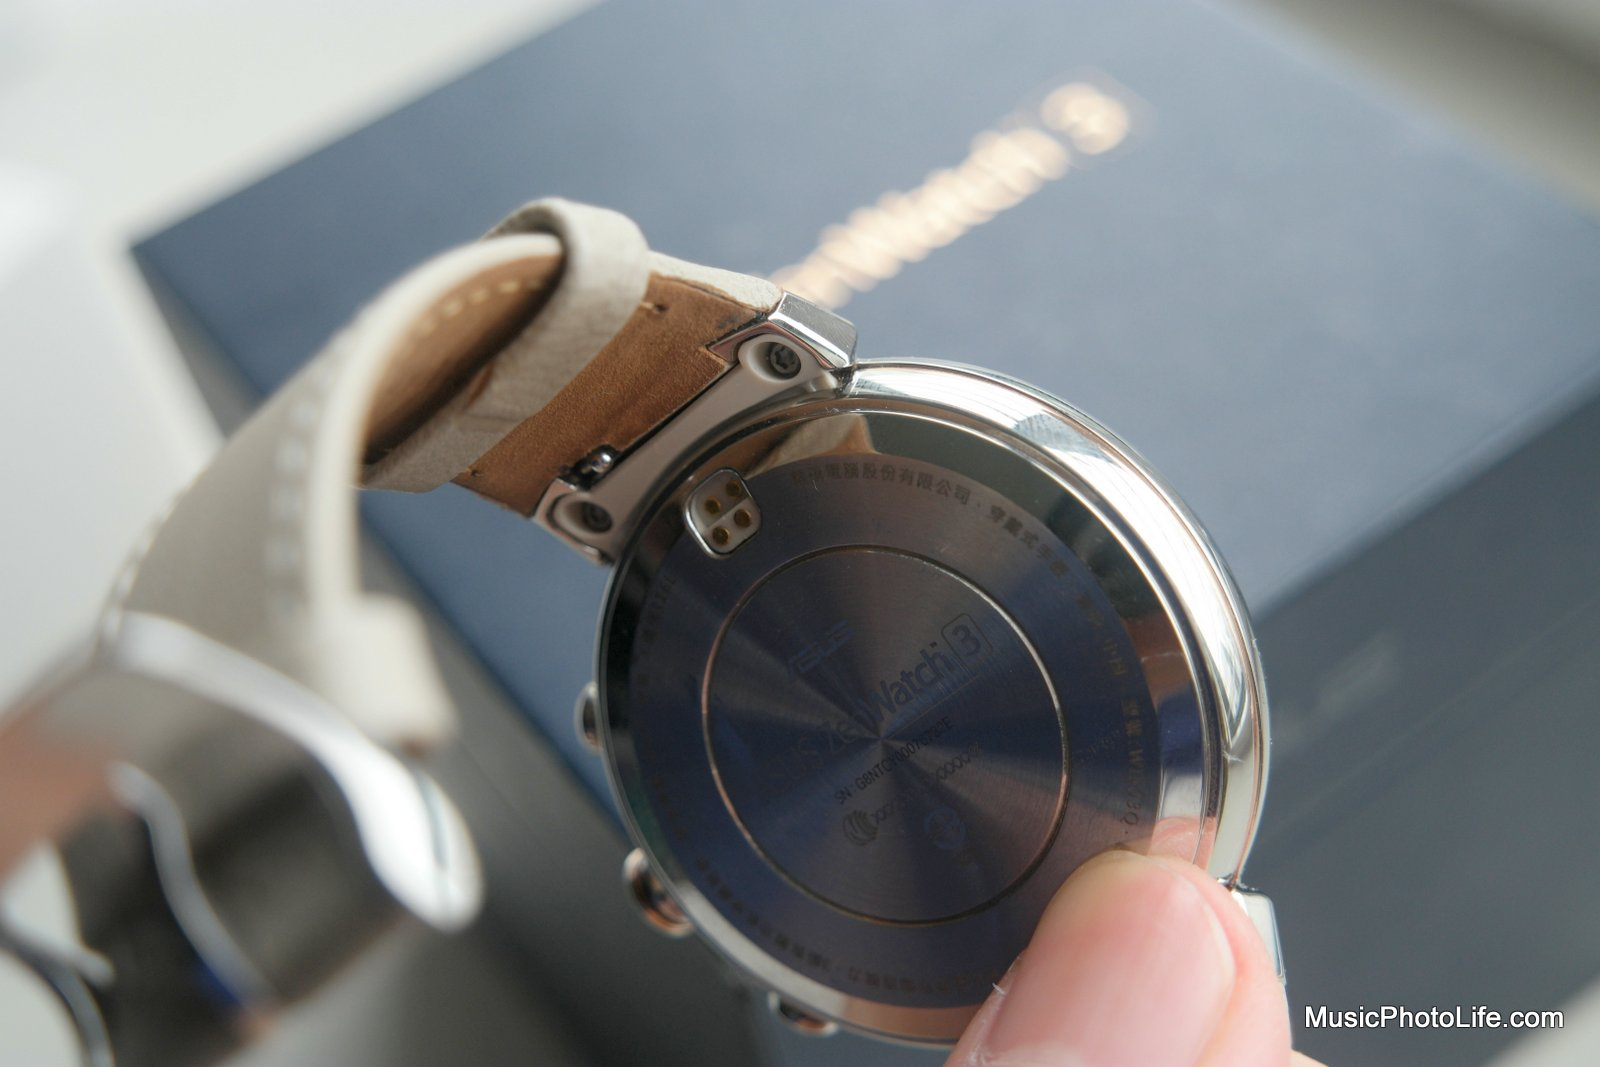 ASUS ZenWatch 3 review by musicphotolife.com